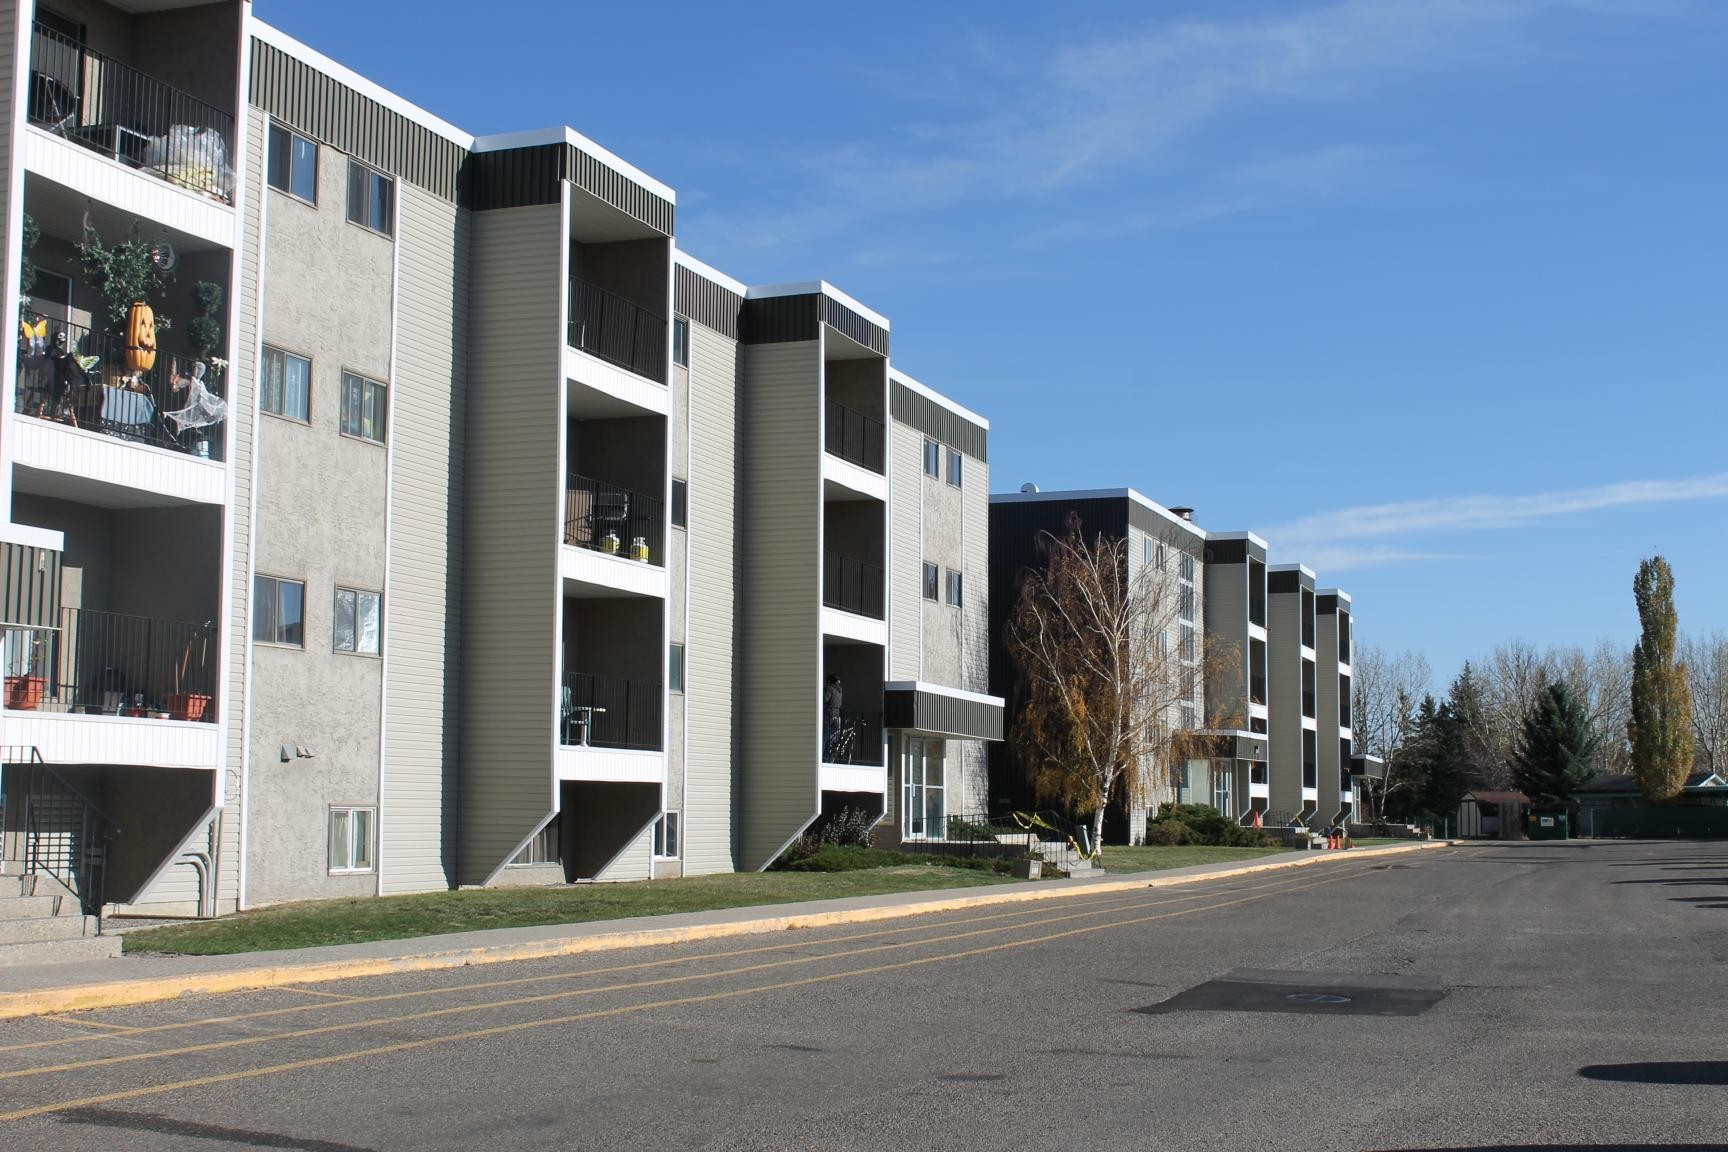 600 Columbia Boulevard Apartments For Rent 600 Columbia Blvd W Lethbridge Ab T1k 5n8 With 2